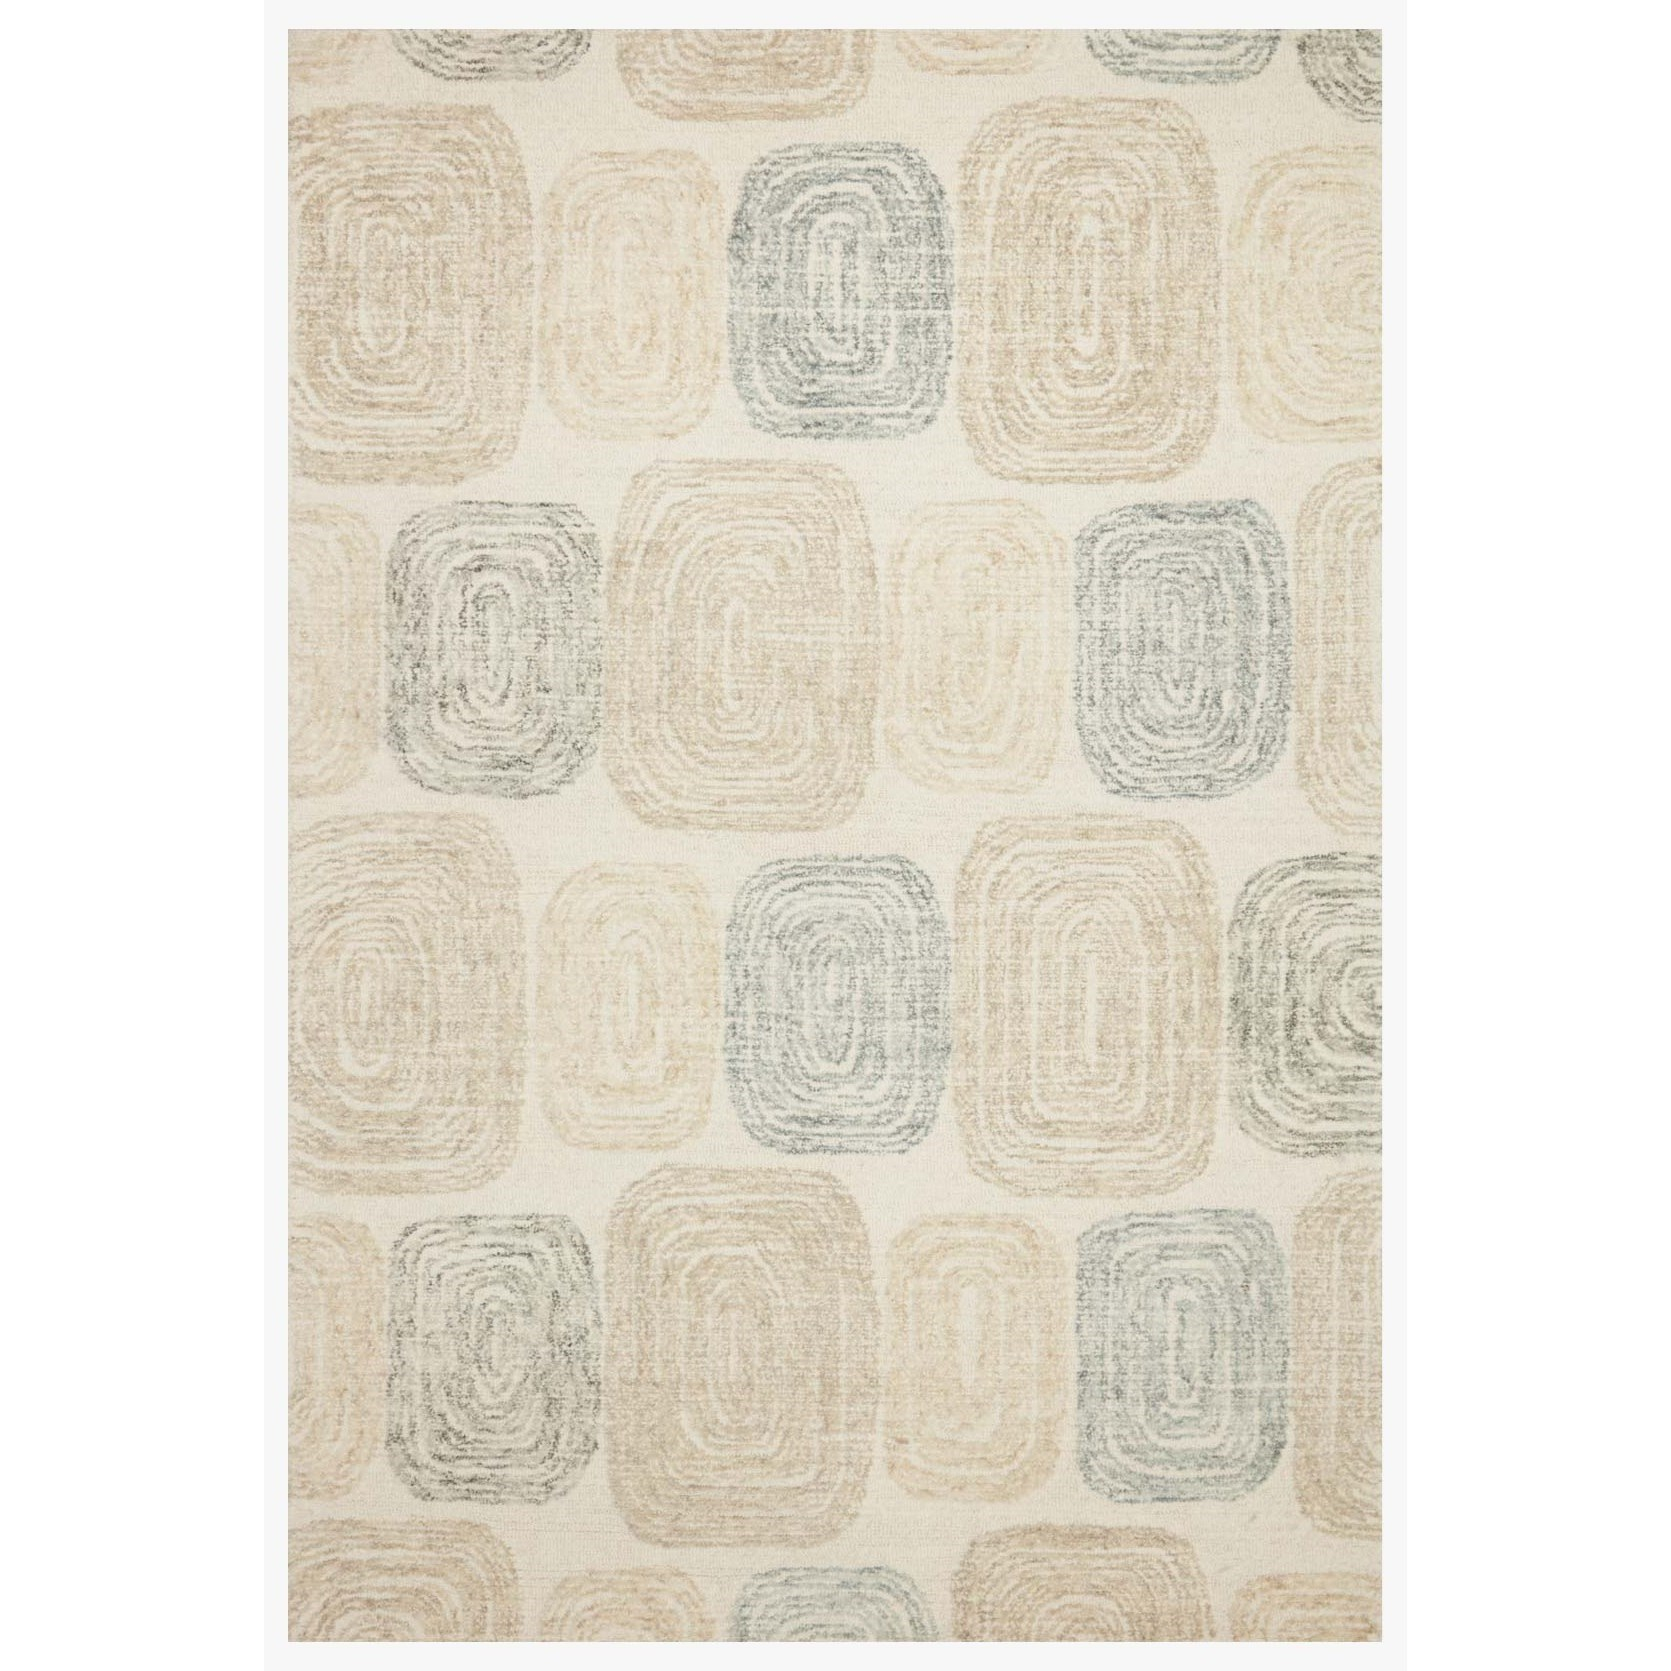 """Milo 3'6"""" x 5'6"""" Teal / Neutral Rug by Loloi Rugs at Virginia Furniture Market"""